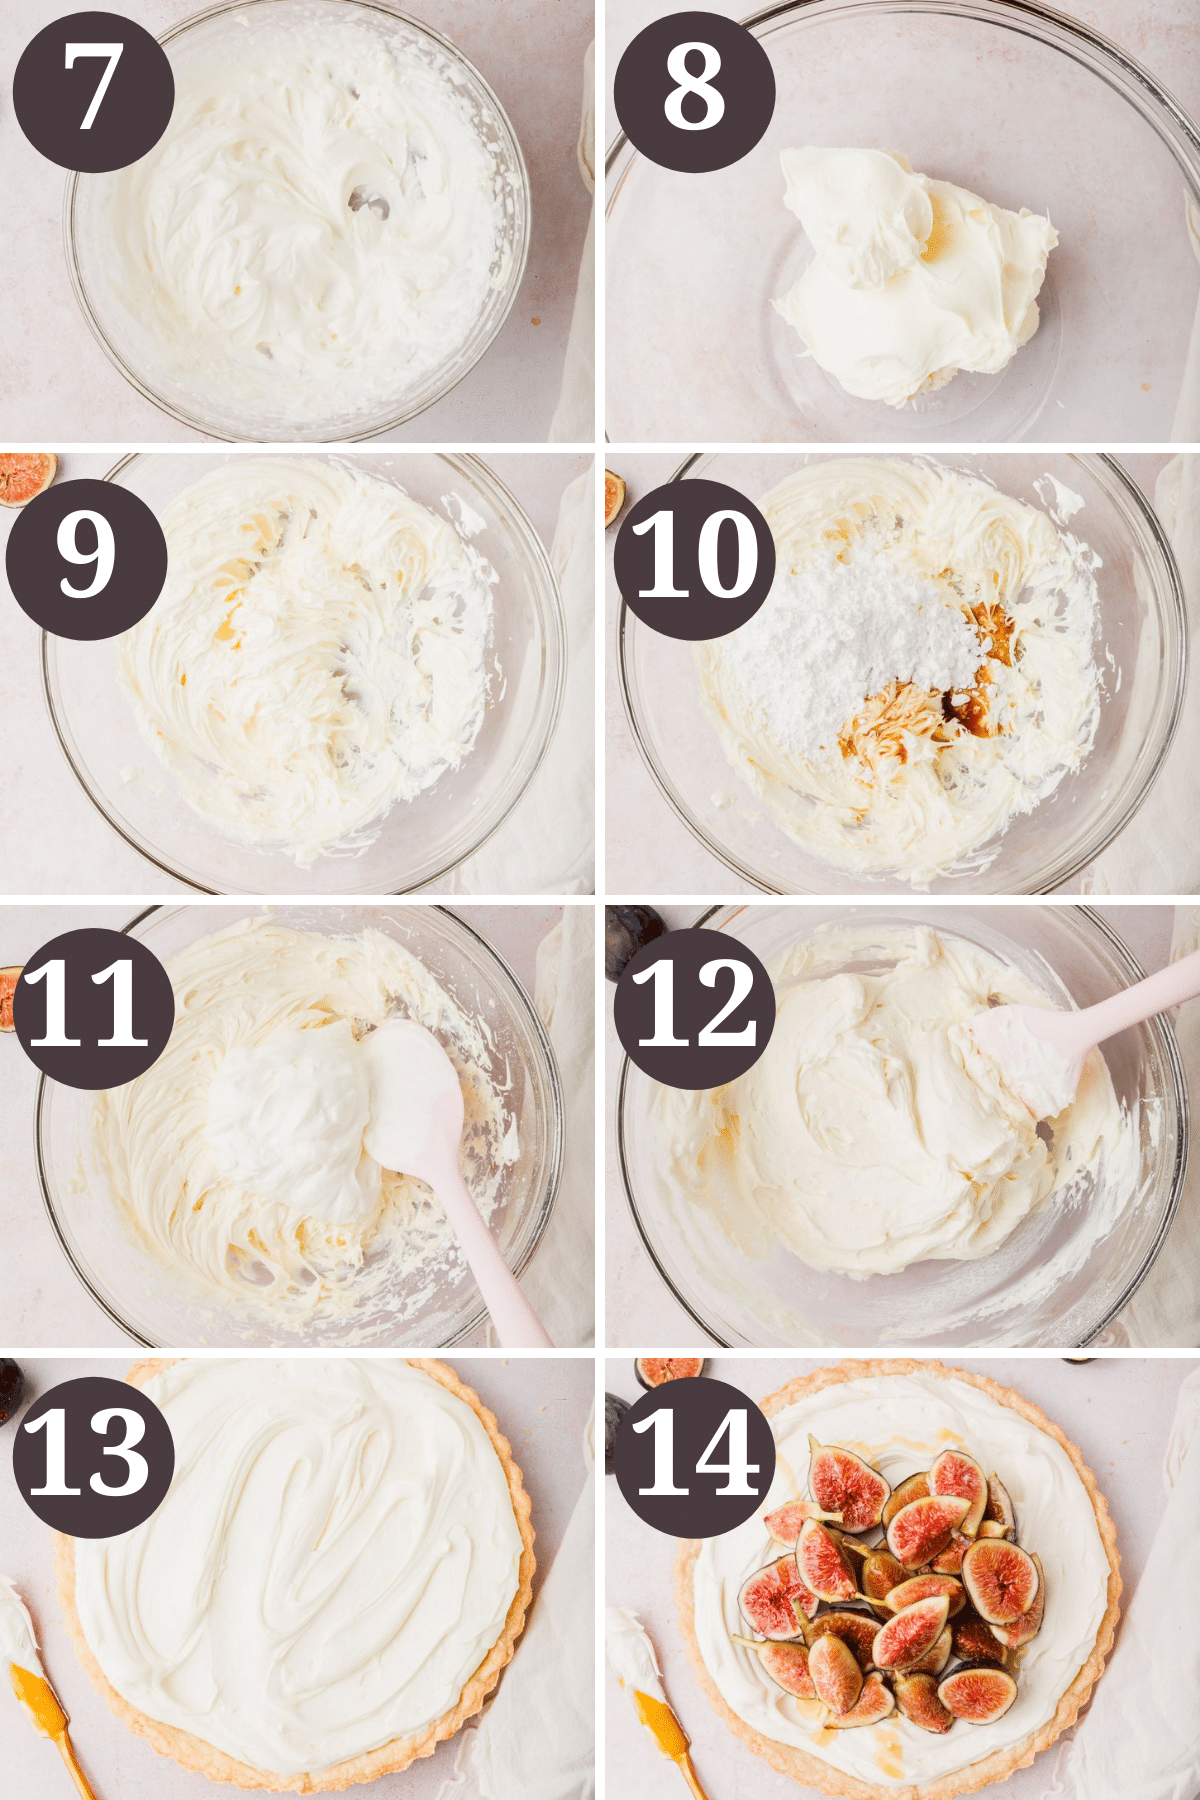 The process for making the gluten free fig tart with mascarpone filling.